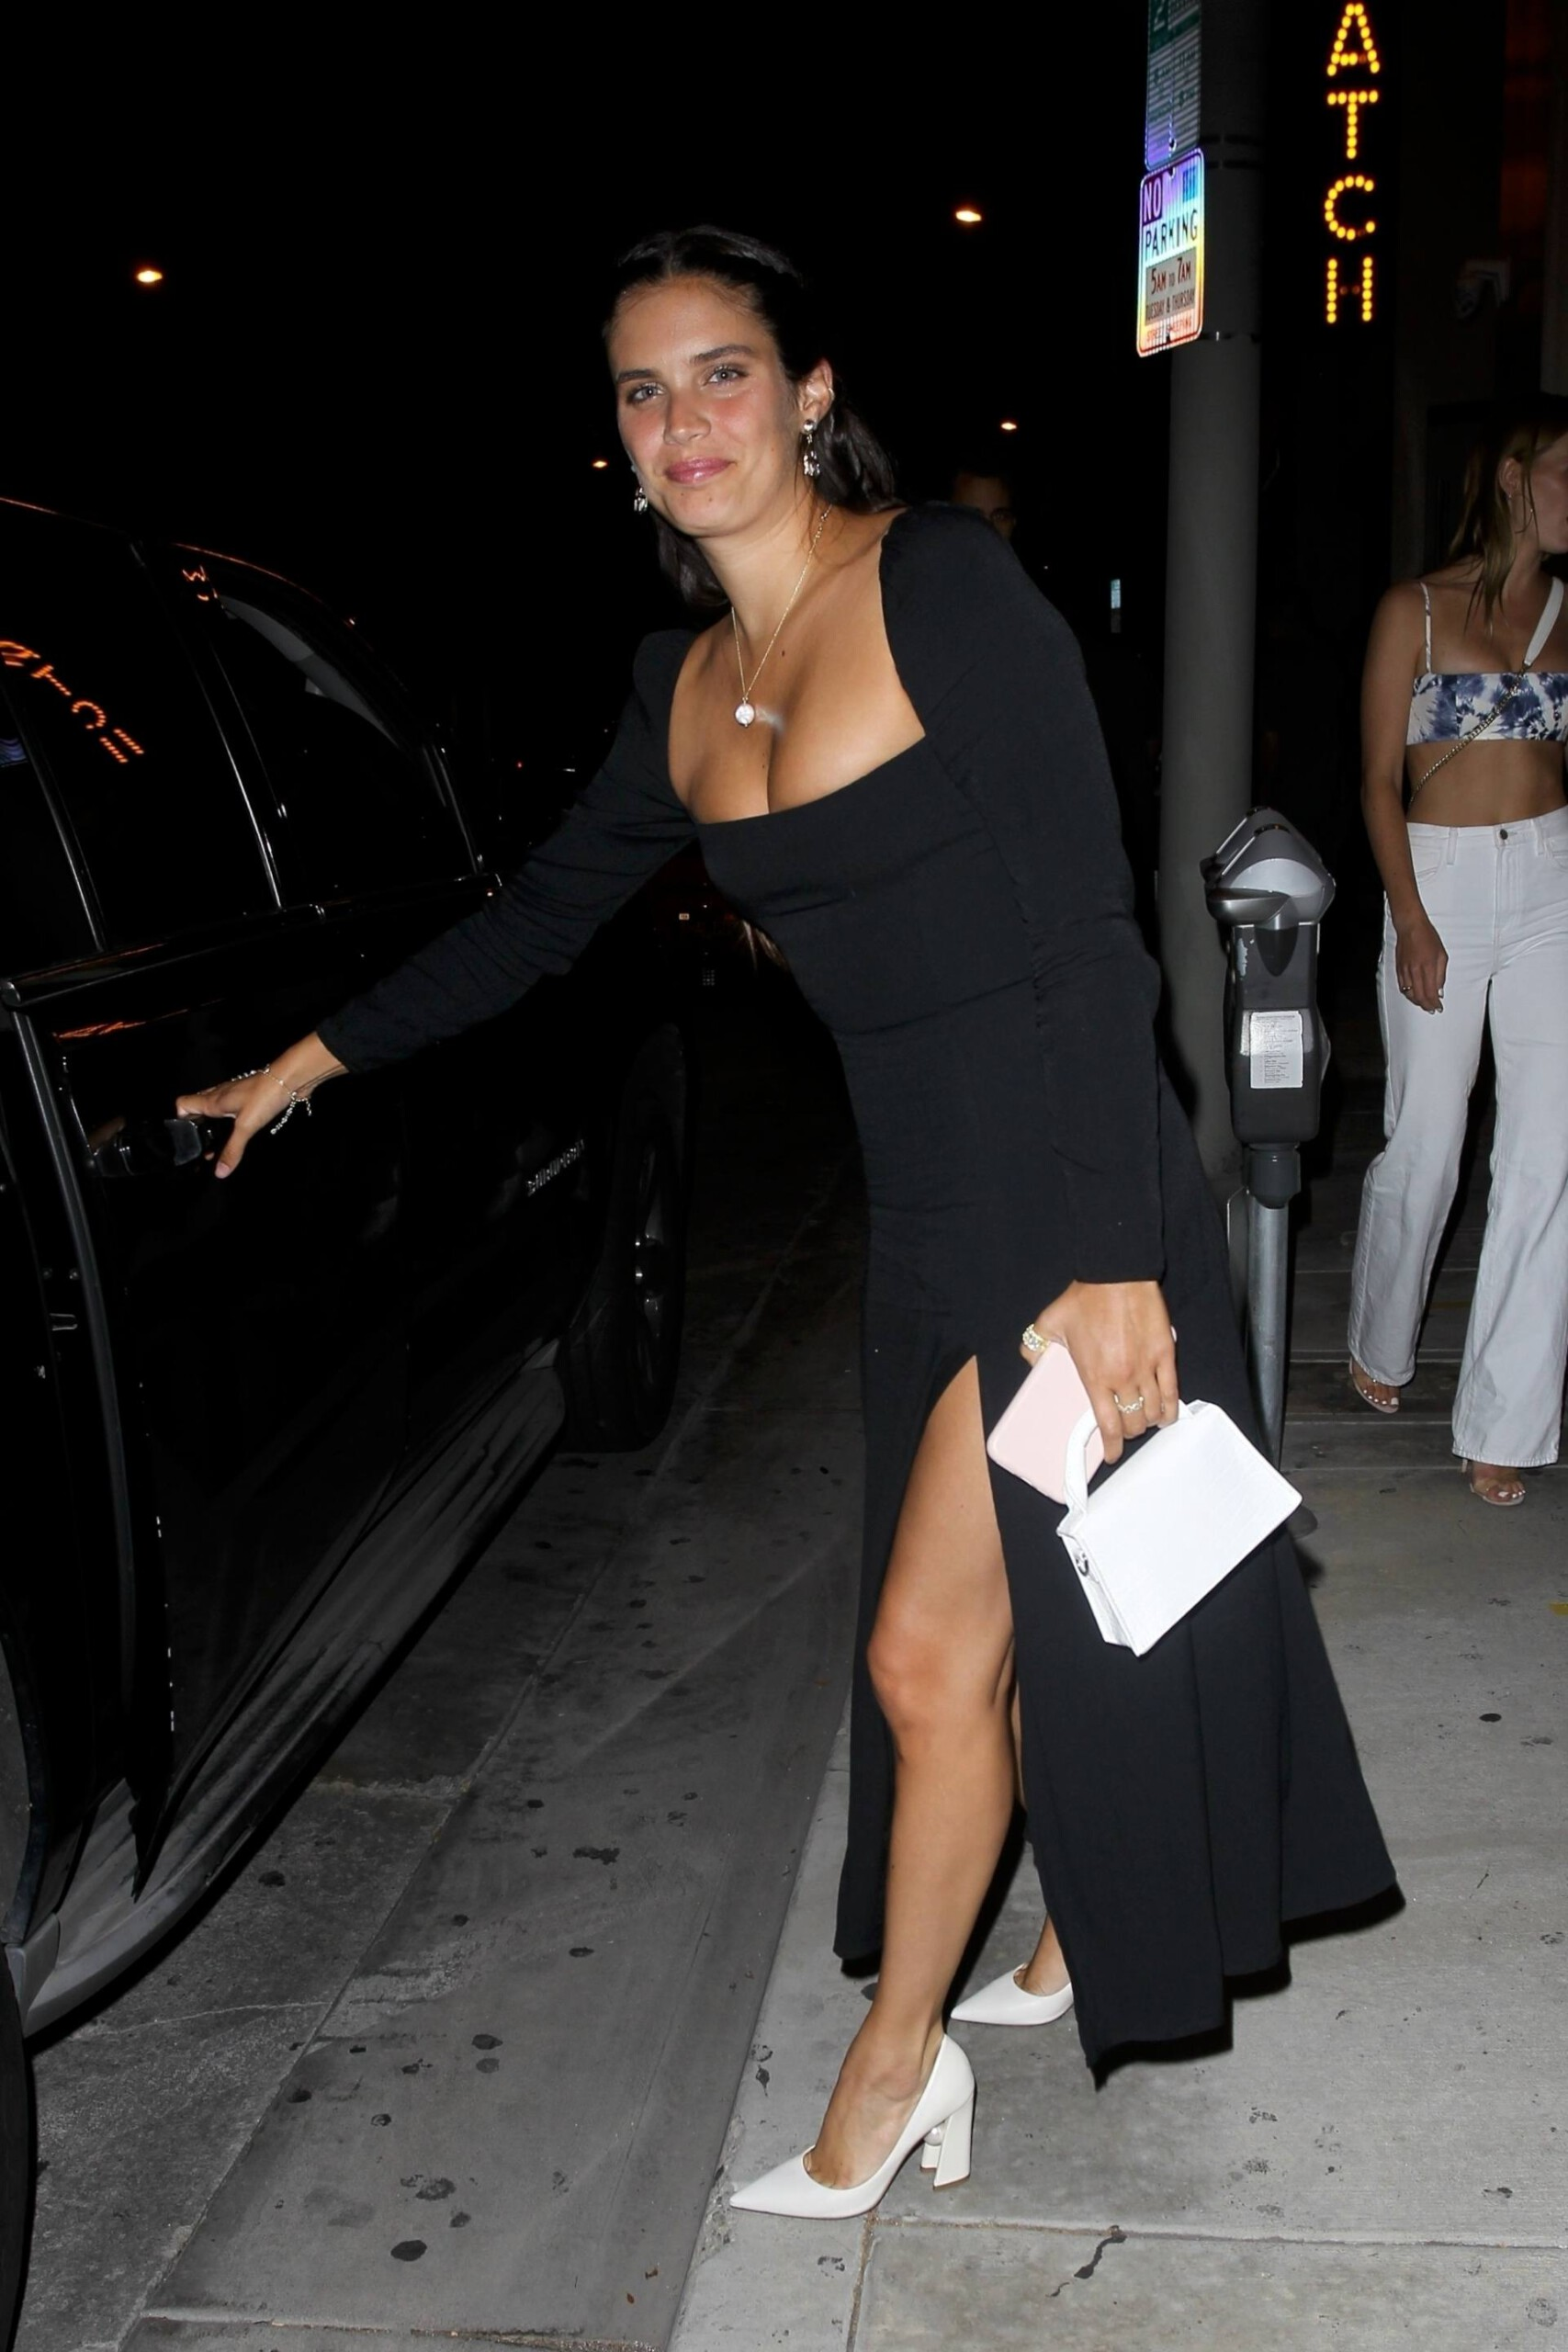 Sara Sampaio – Beautiful In Sexy Black Dress At Catch Restaurant In West Hollywood 0020